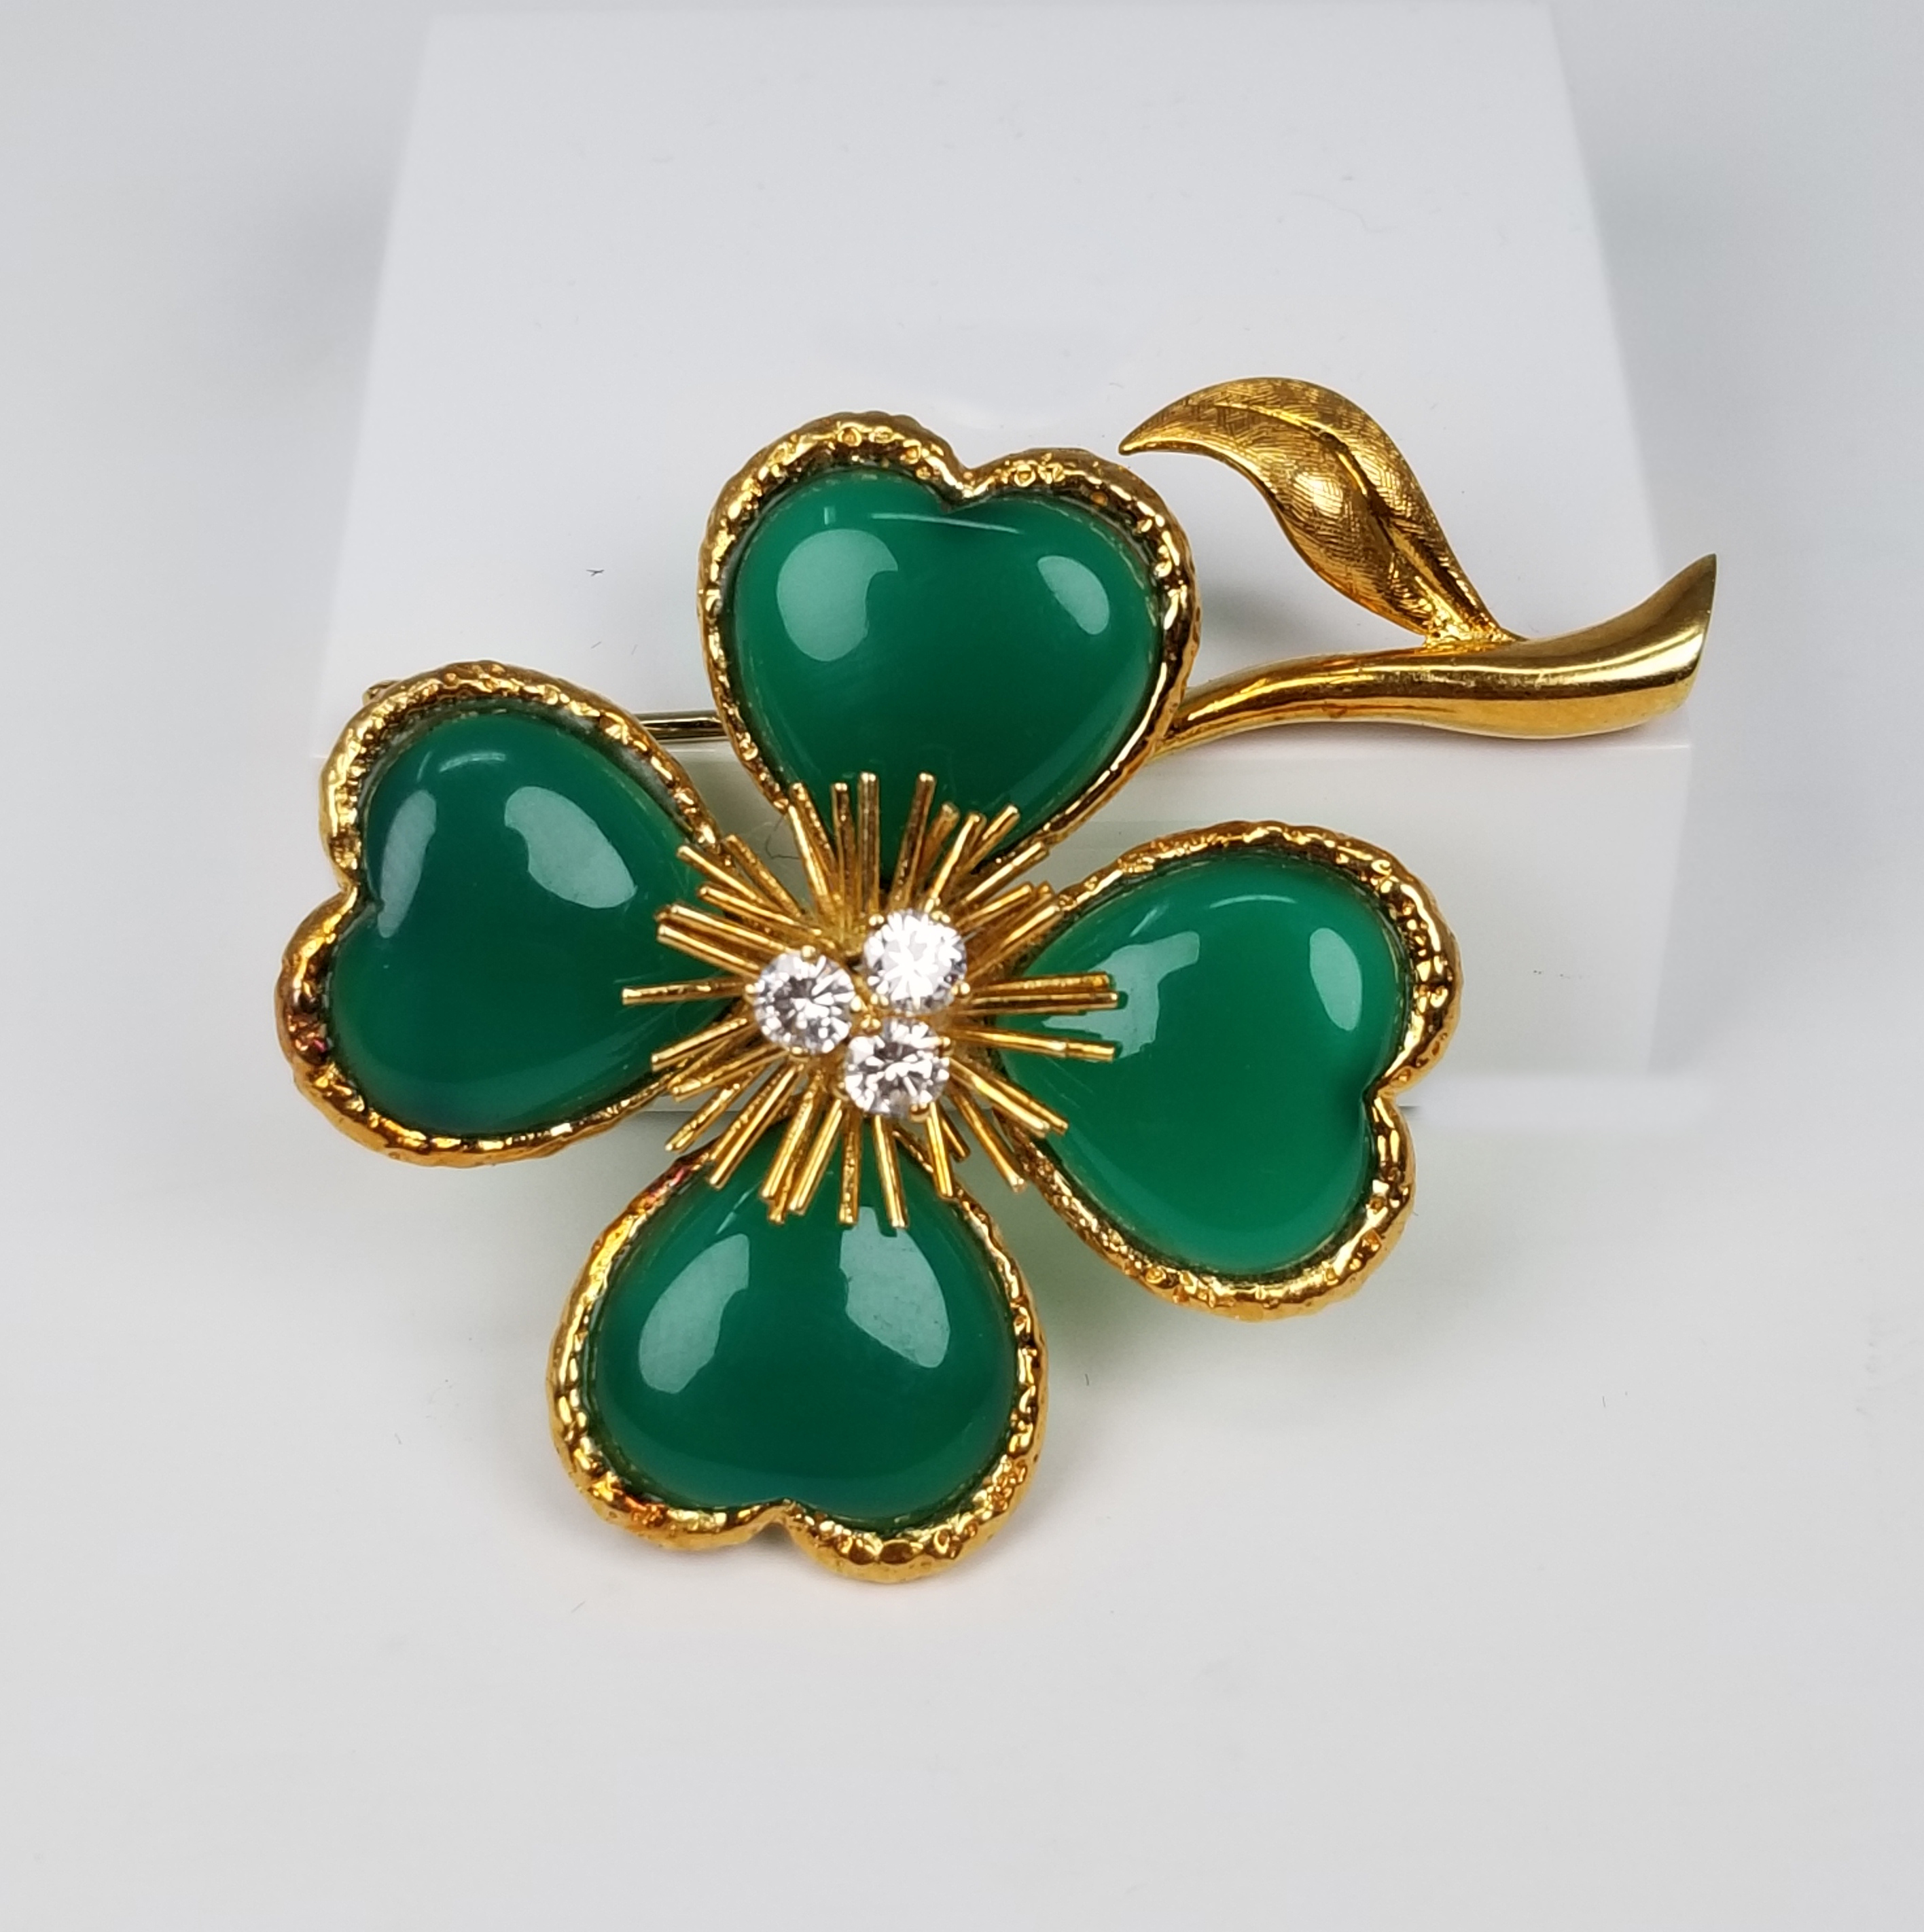 Lot 34 - 18K Van Cleef & Arpels Clover Chrysoprase Brooch